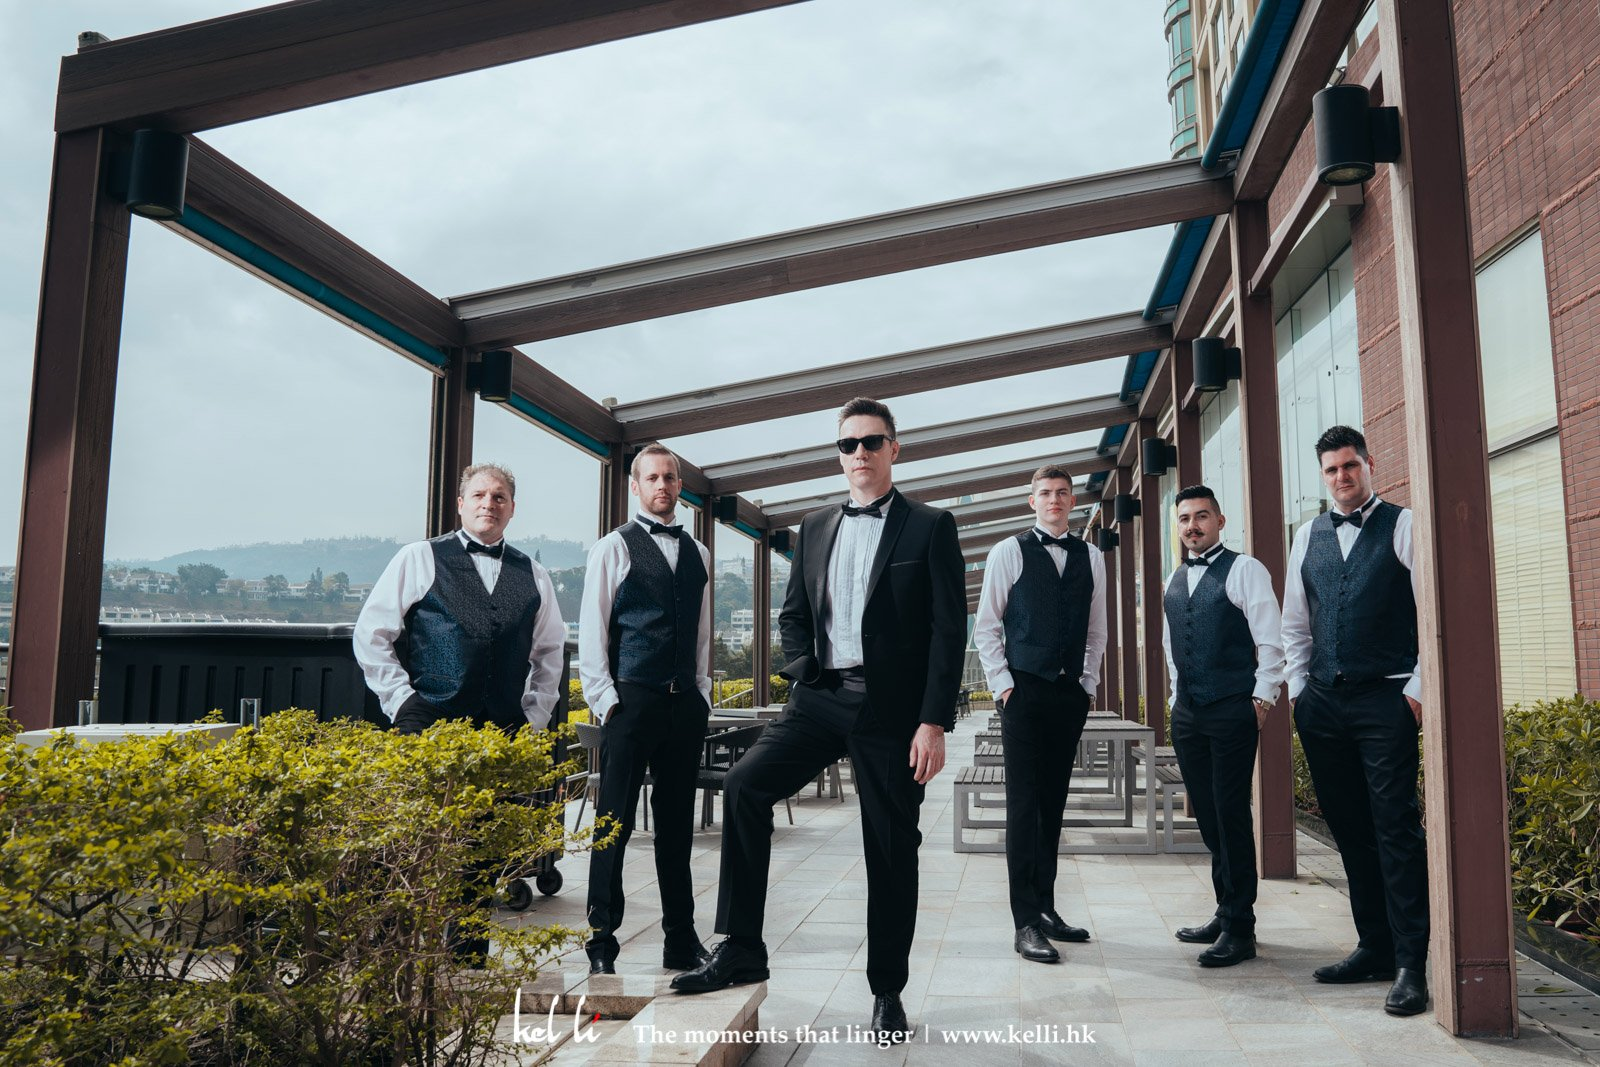 A cool wedding photo for groomsmen